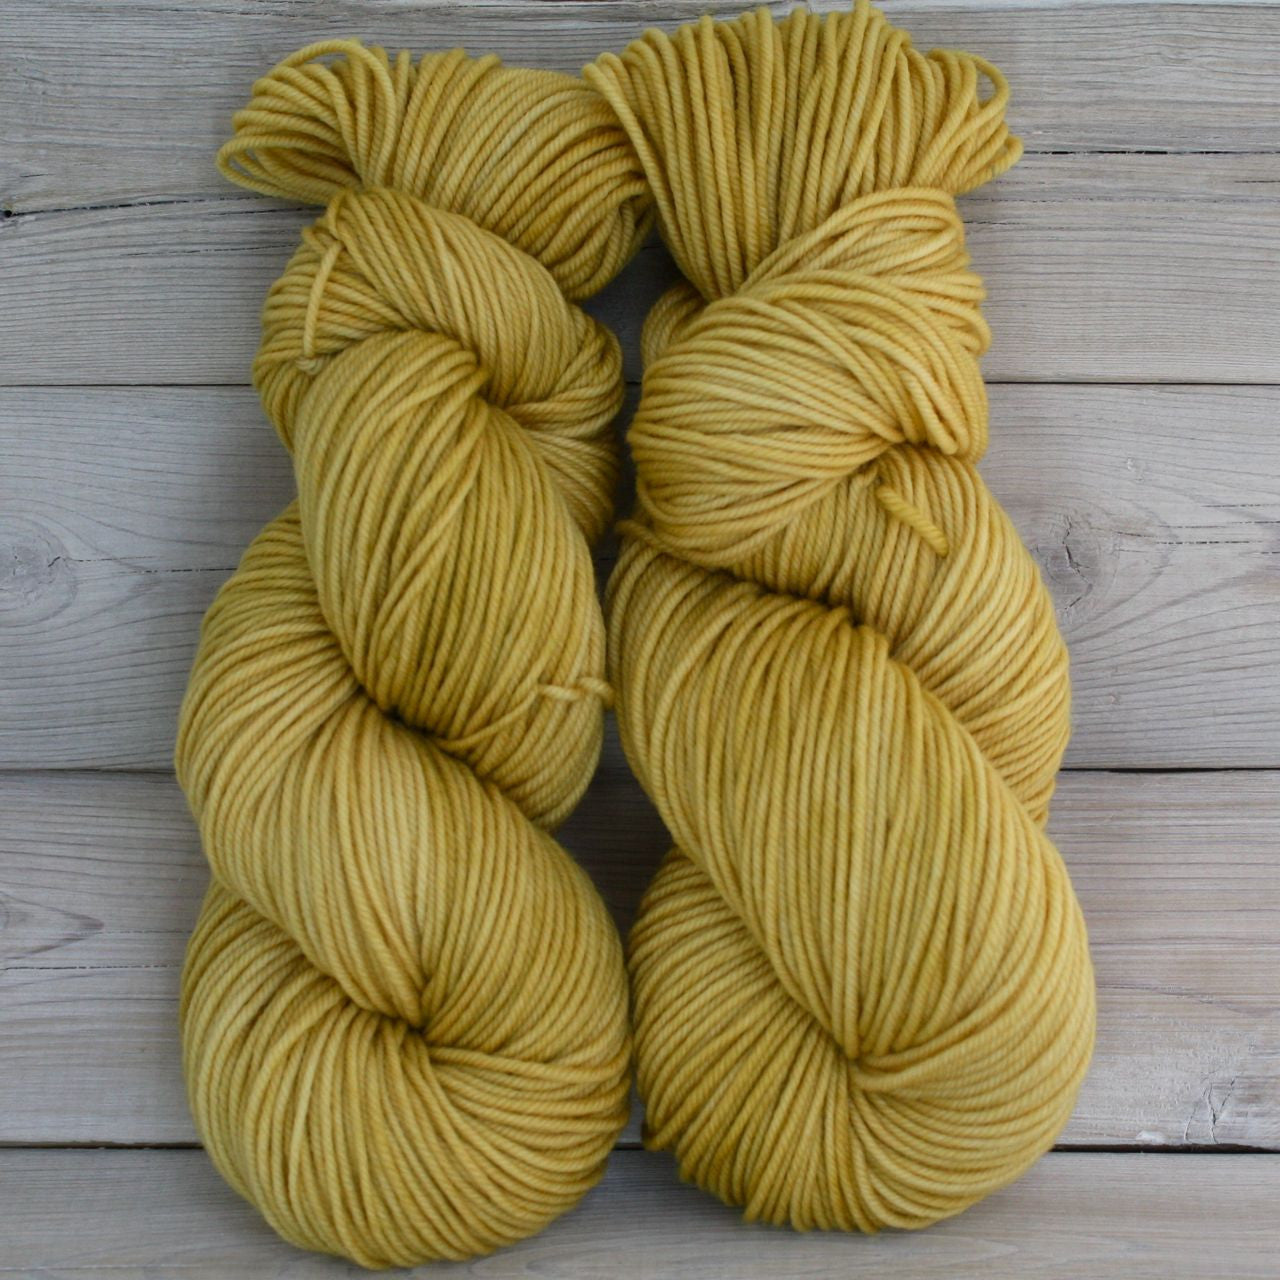 Calypso Yarn | Colorway: Honeycomb